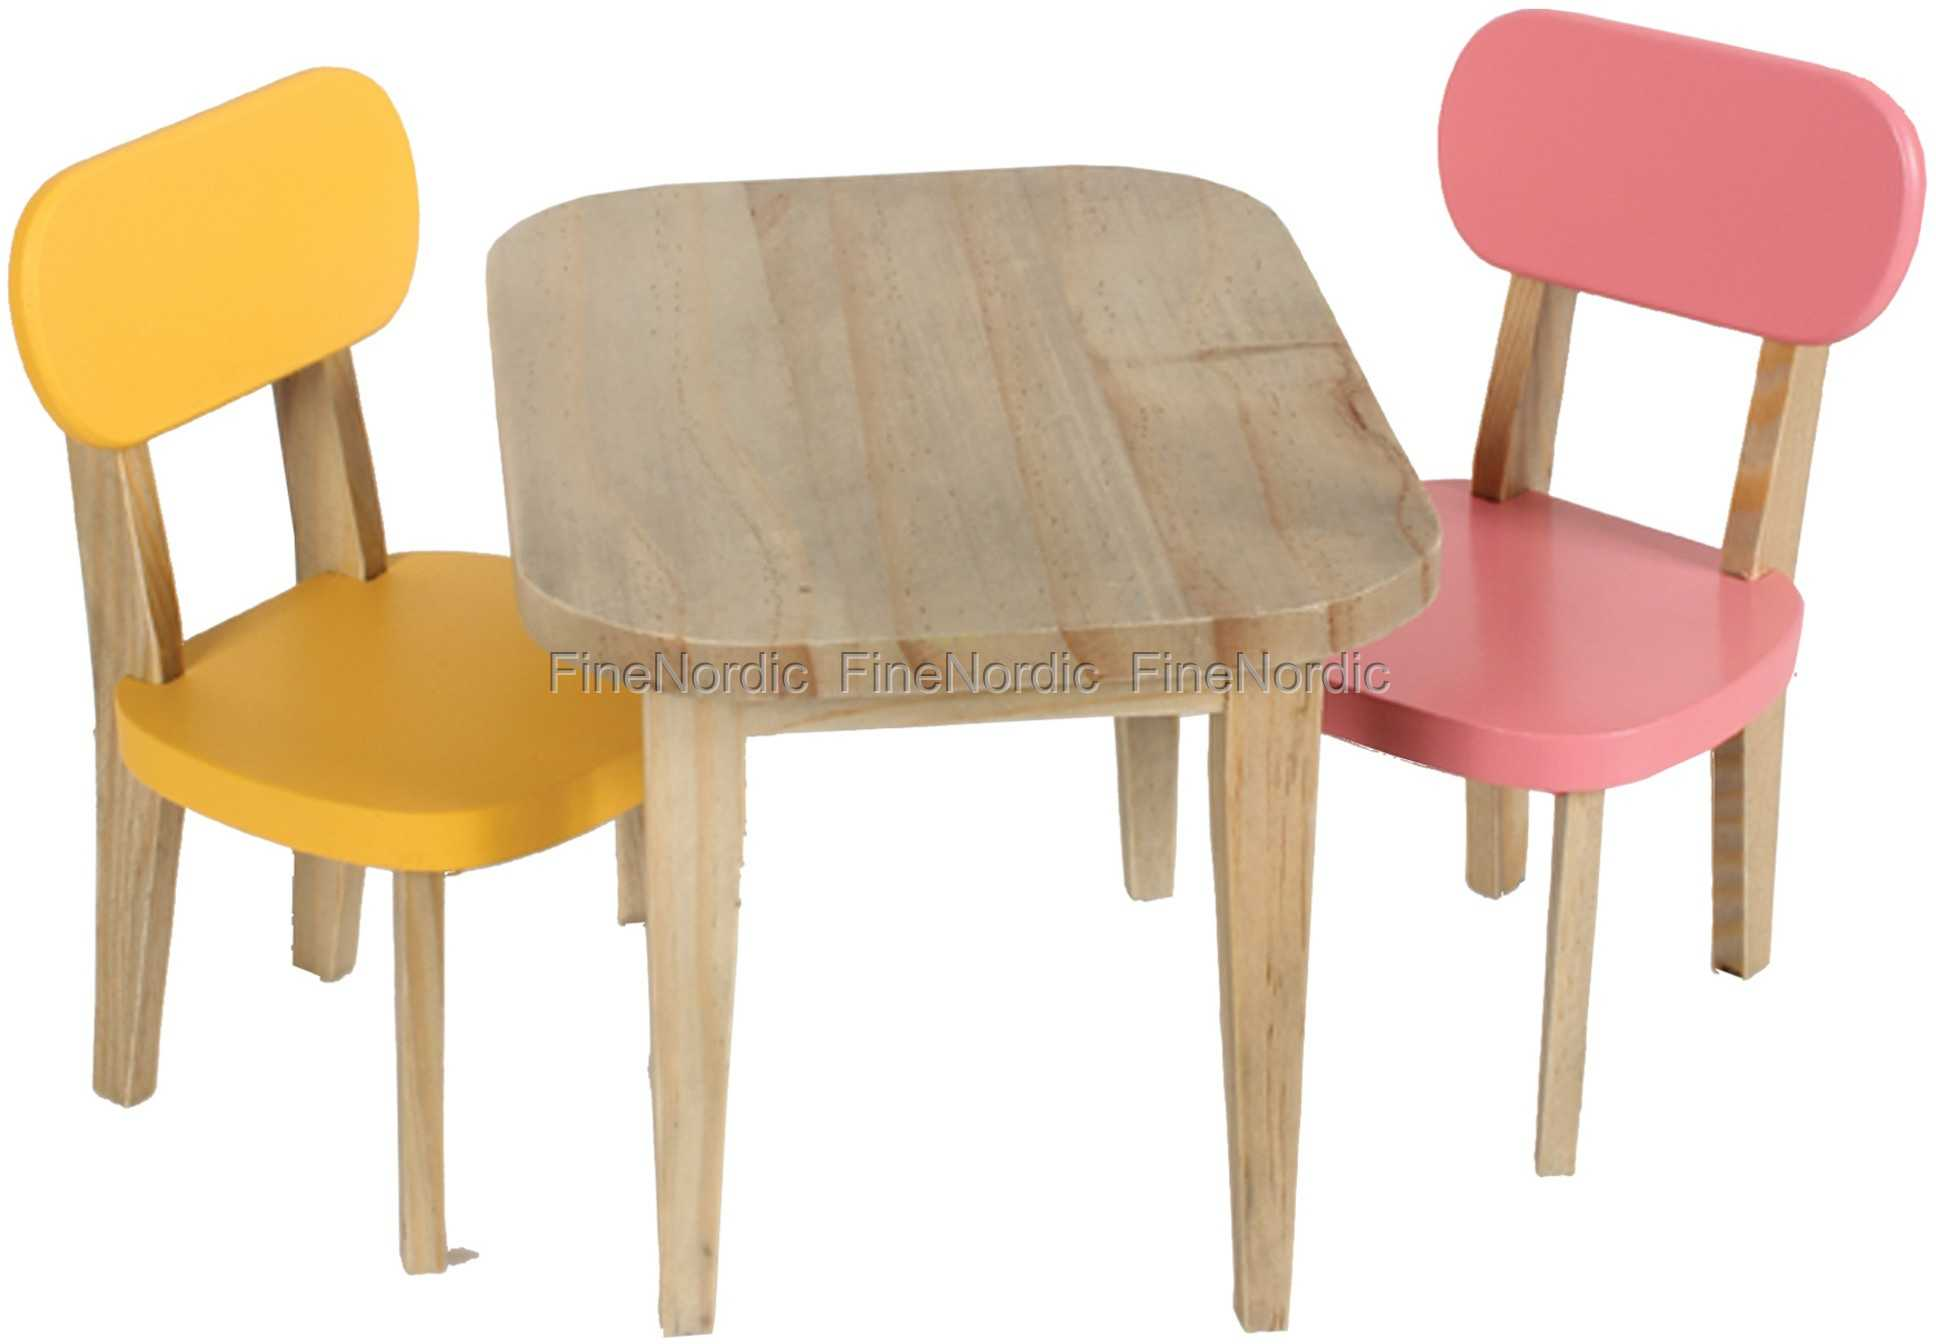 Maileg Rabbit Wooden Table and 2 Chairs Yellow and Pink Buy